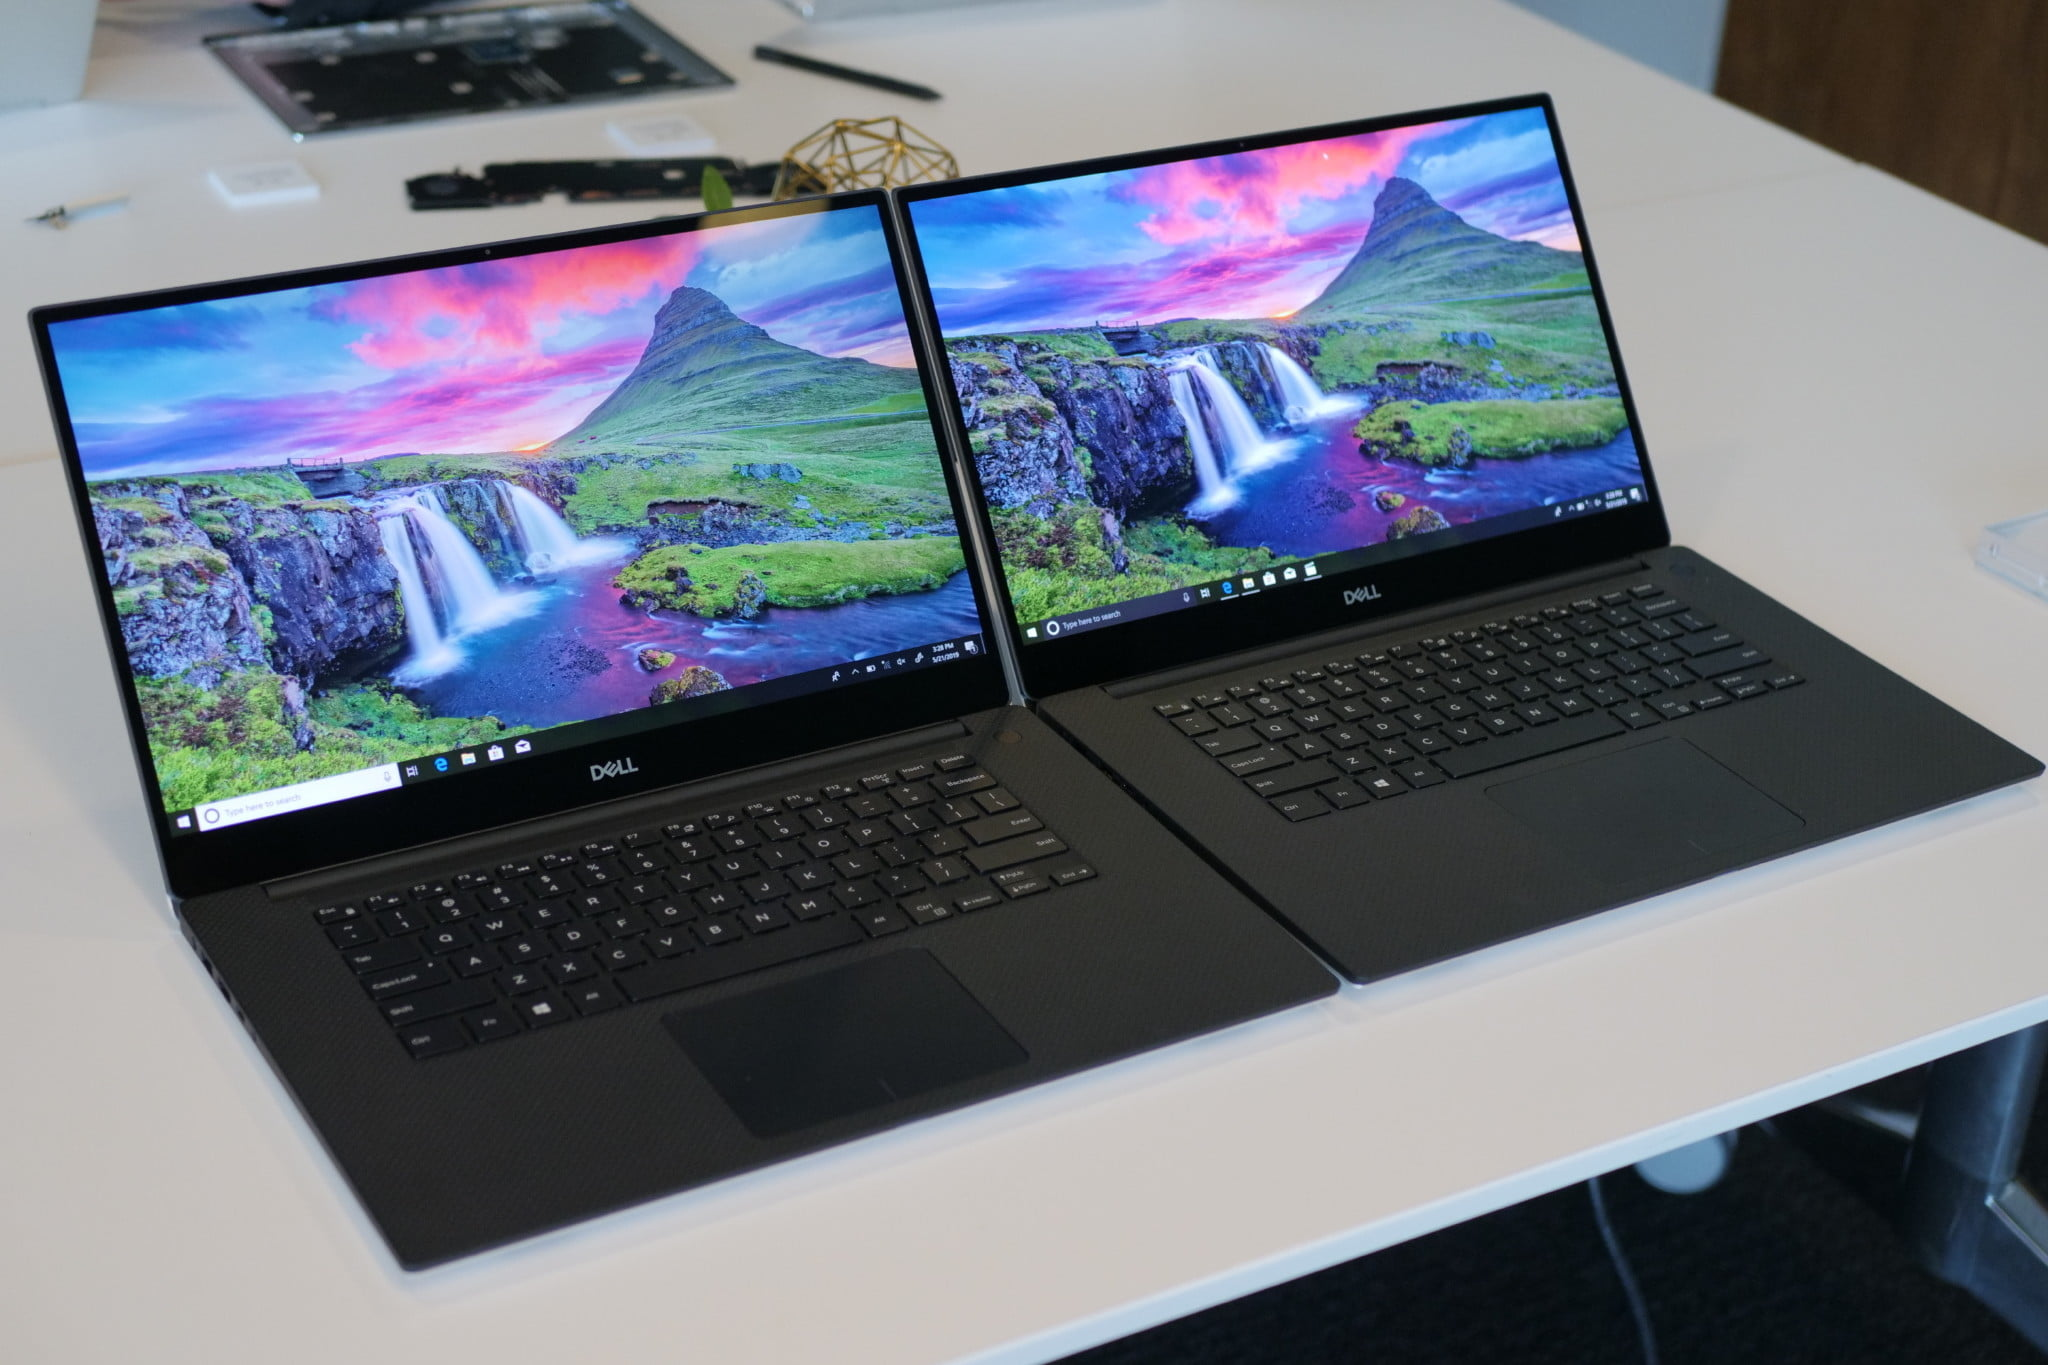 a0d2221c678 At Computex 2019, Dell has announced the new XPS 13 and XPS 15 laptops. The new  XPS 13 will be powered by Intel's 10th generation Ice Lake processors while  ...